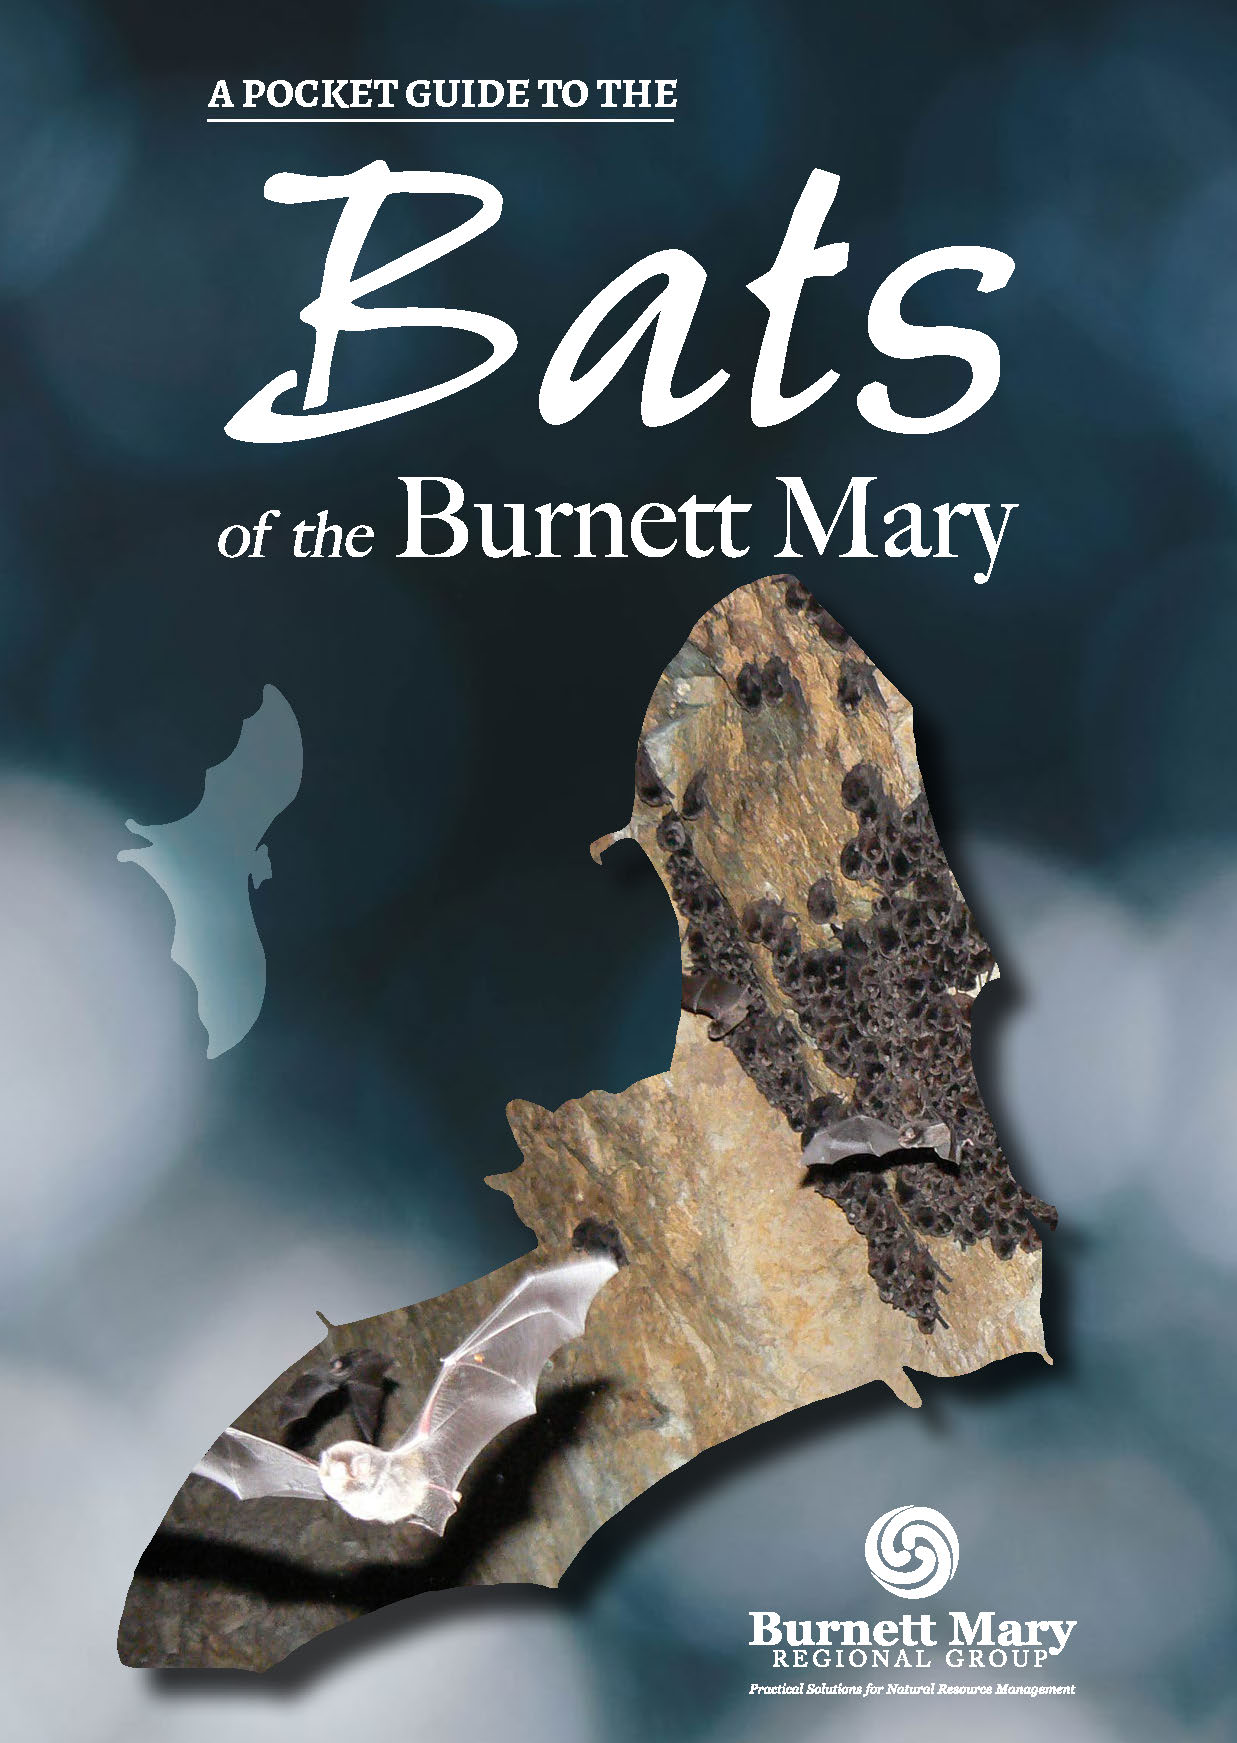 Pocket Guide to Bats of the Burnett Mary Cover